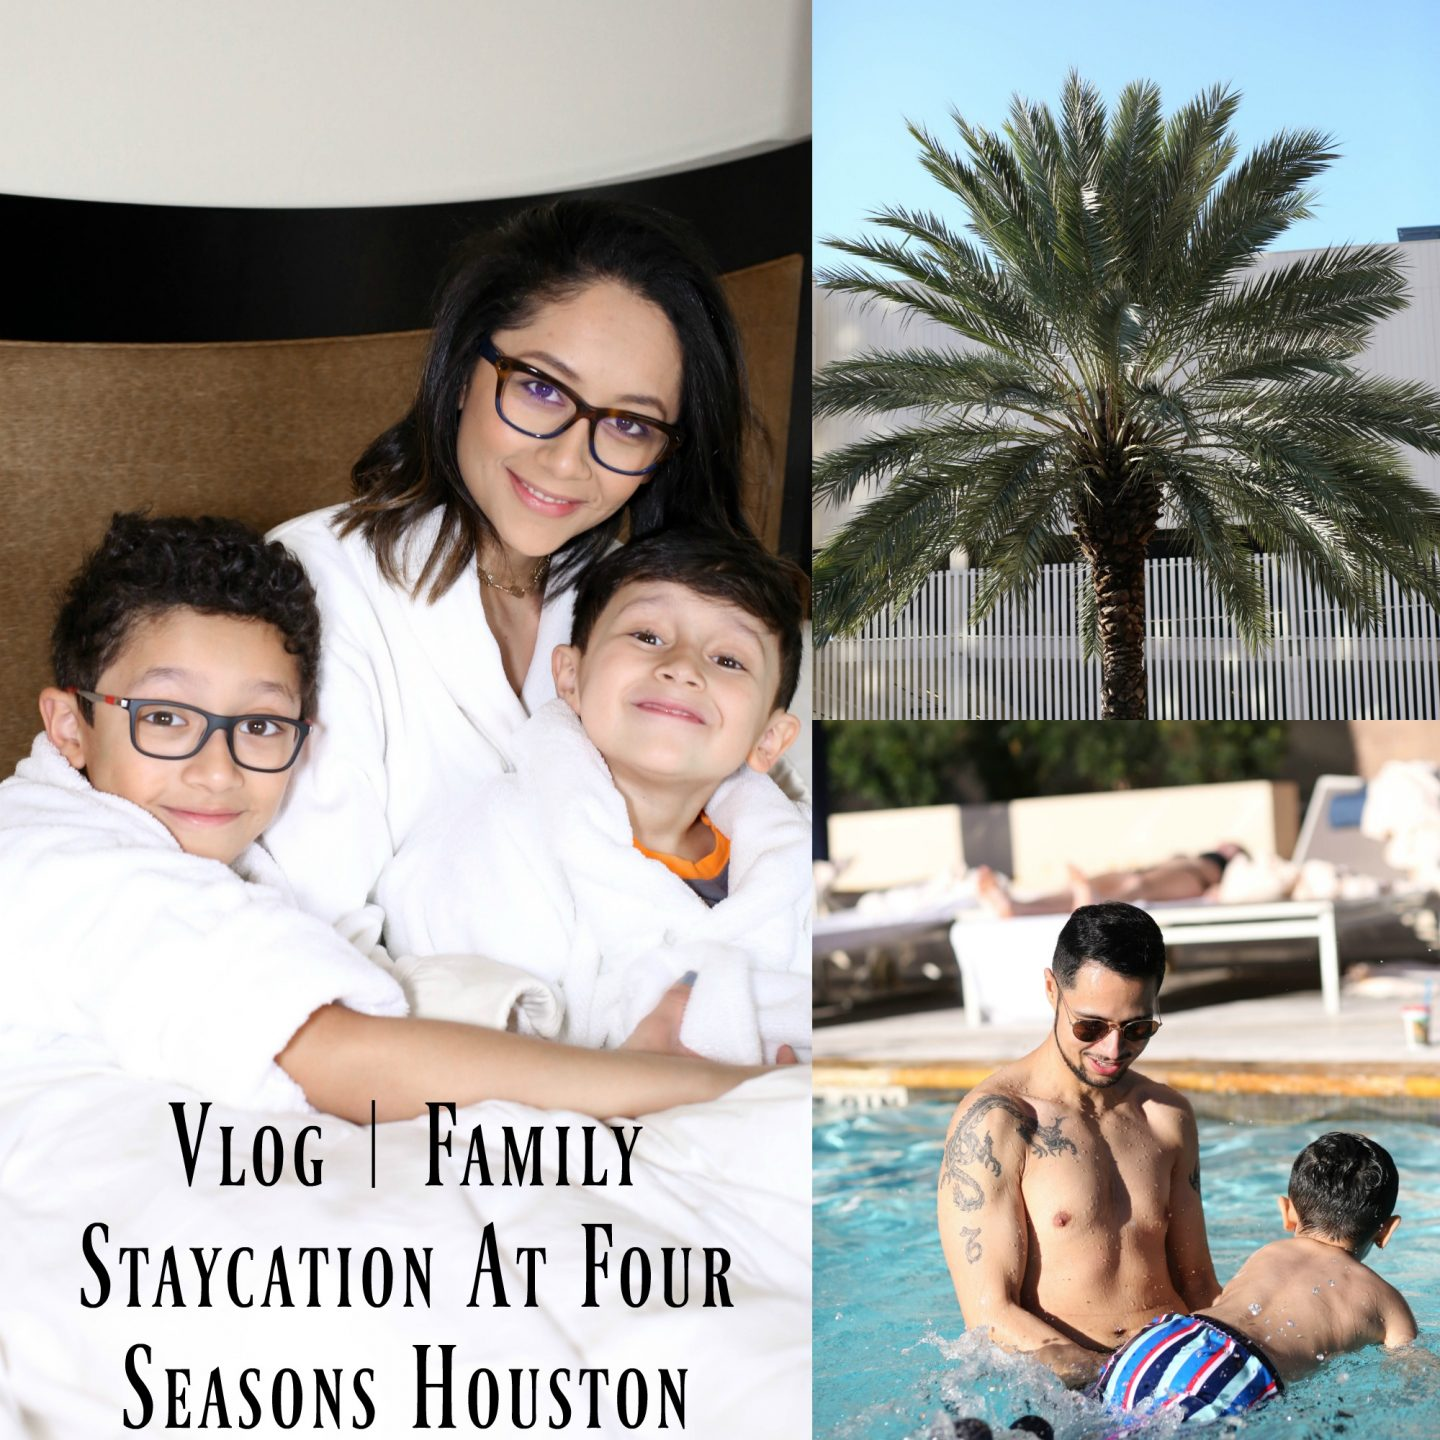 Vlog | Family Staycation At Four Seasons Houston